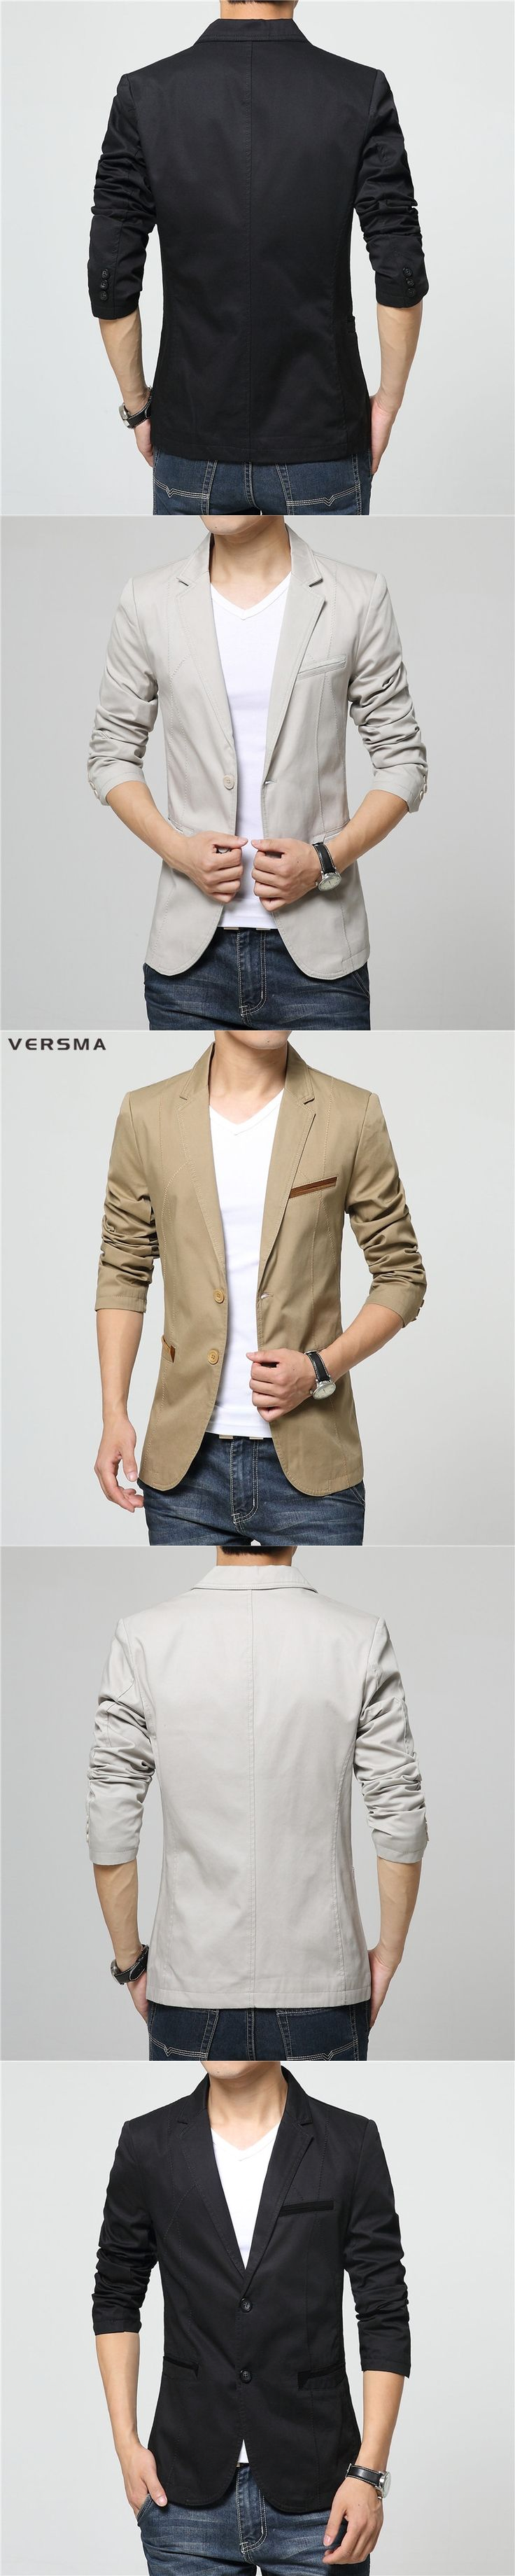 VERSMA Beige Black Casual Men Blazer Suit Jacket Styles for Wedding Party Wear Chaqueta Terno Slim Fit Office Suits Blazers Male